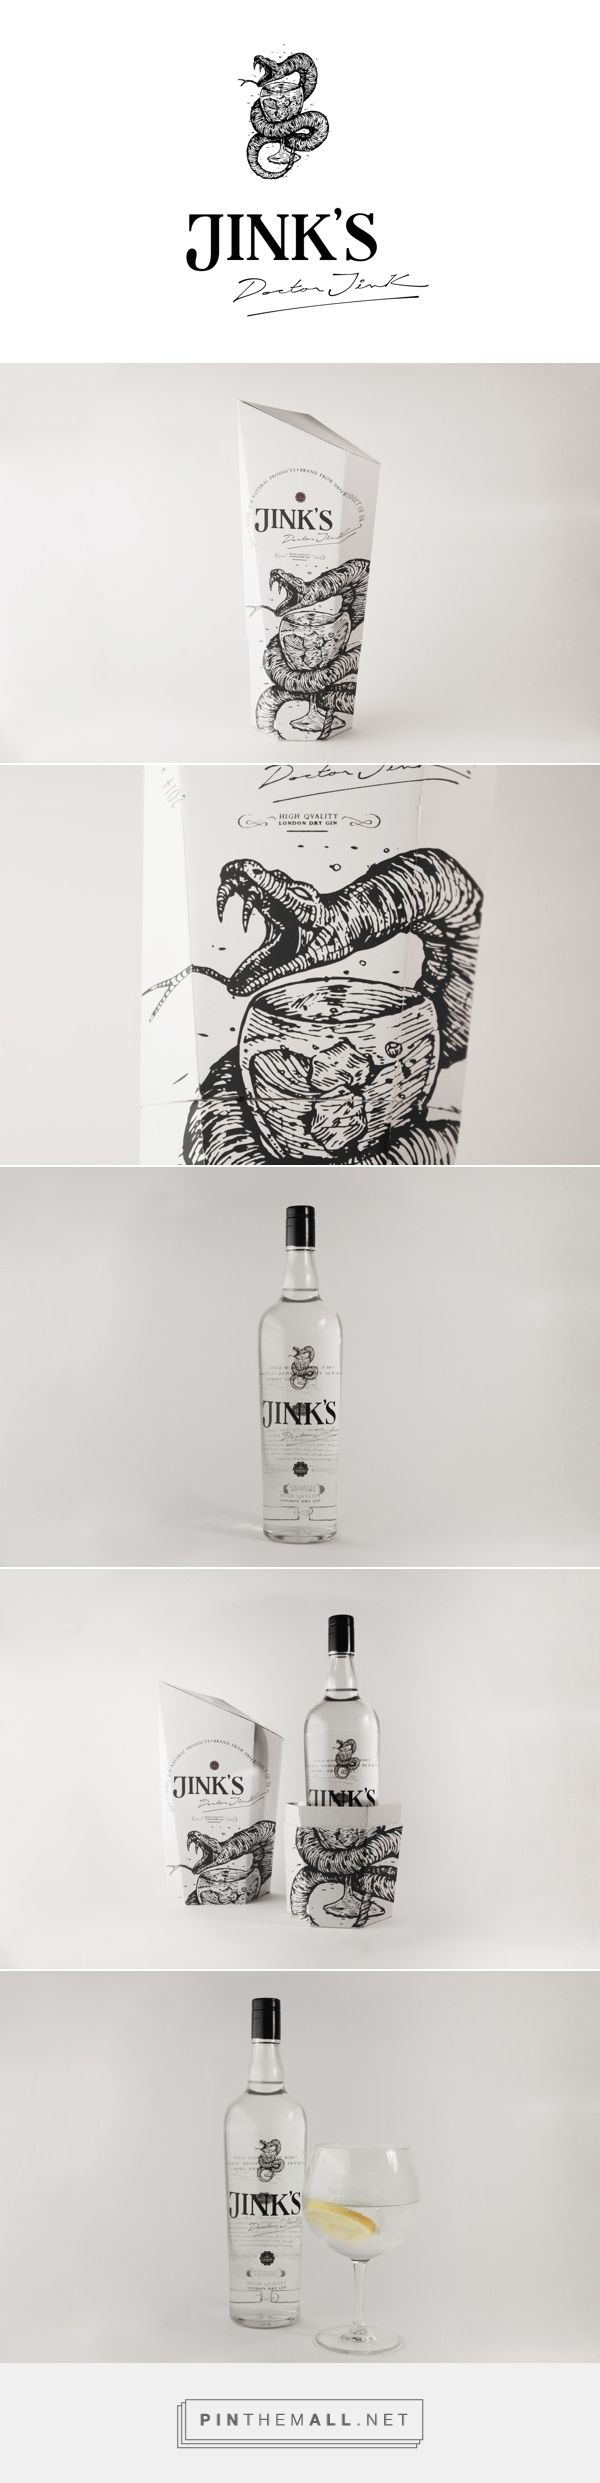 JINKS - ANAMORPHIC PACKAGING on Behance curated by Packaging Diva PD. Interesting London Gin packaging.